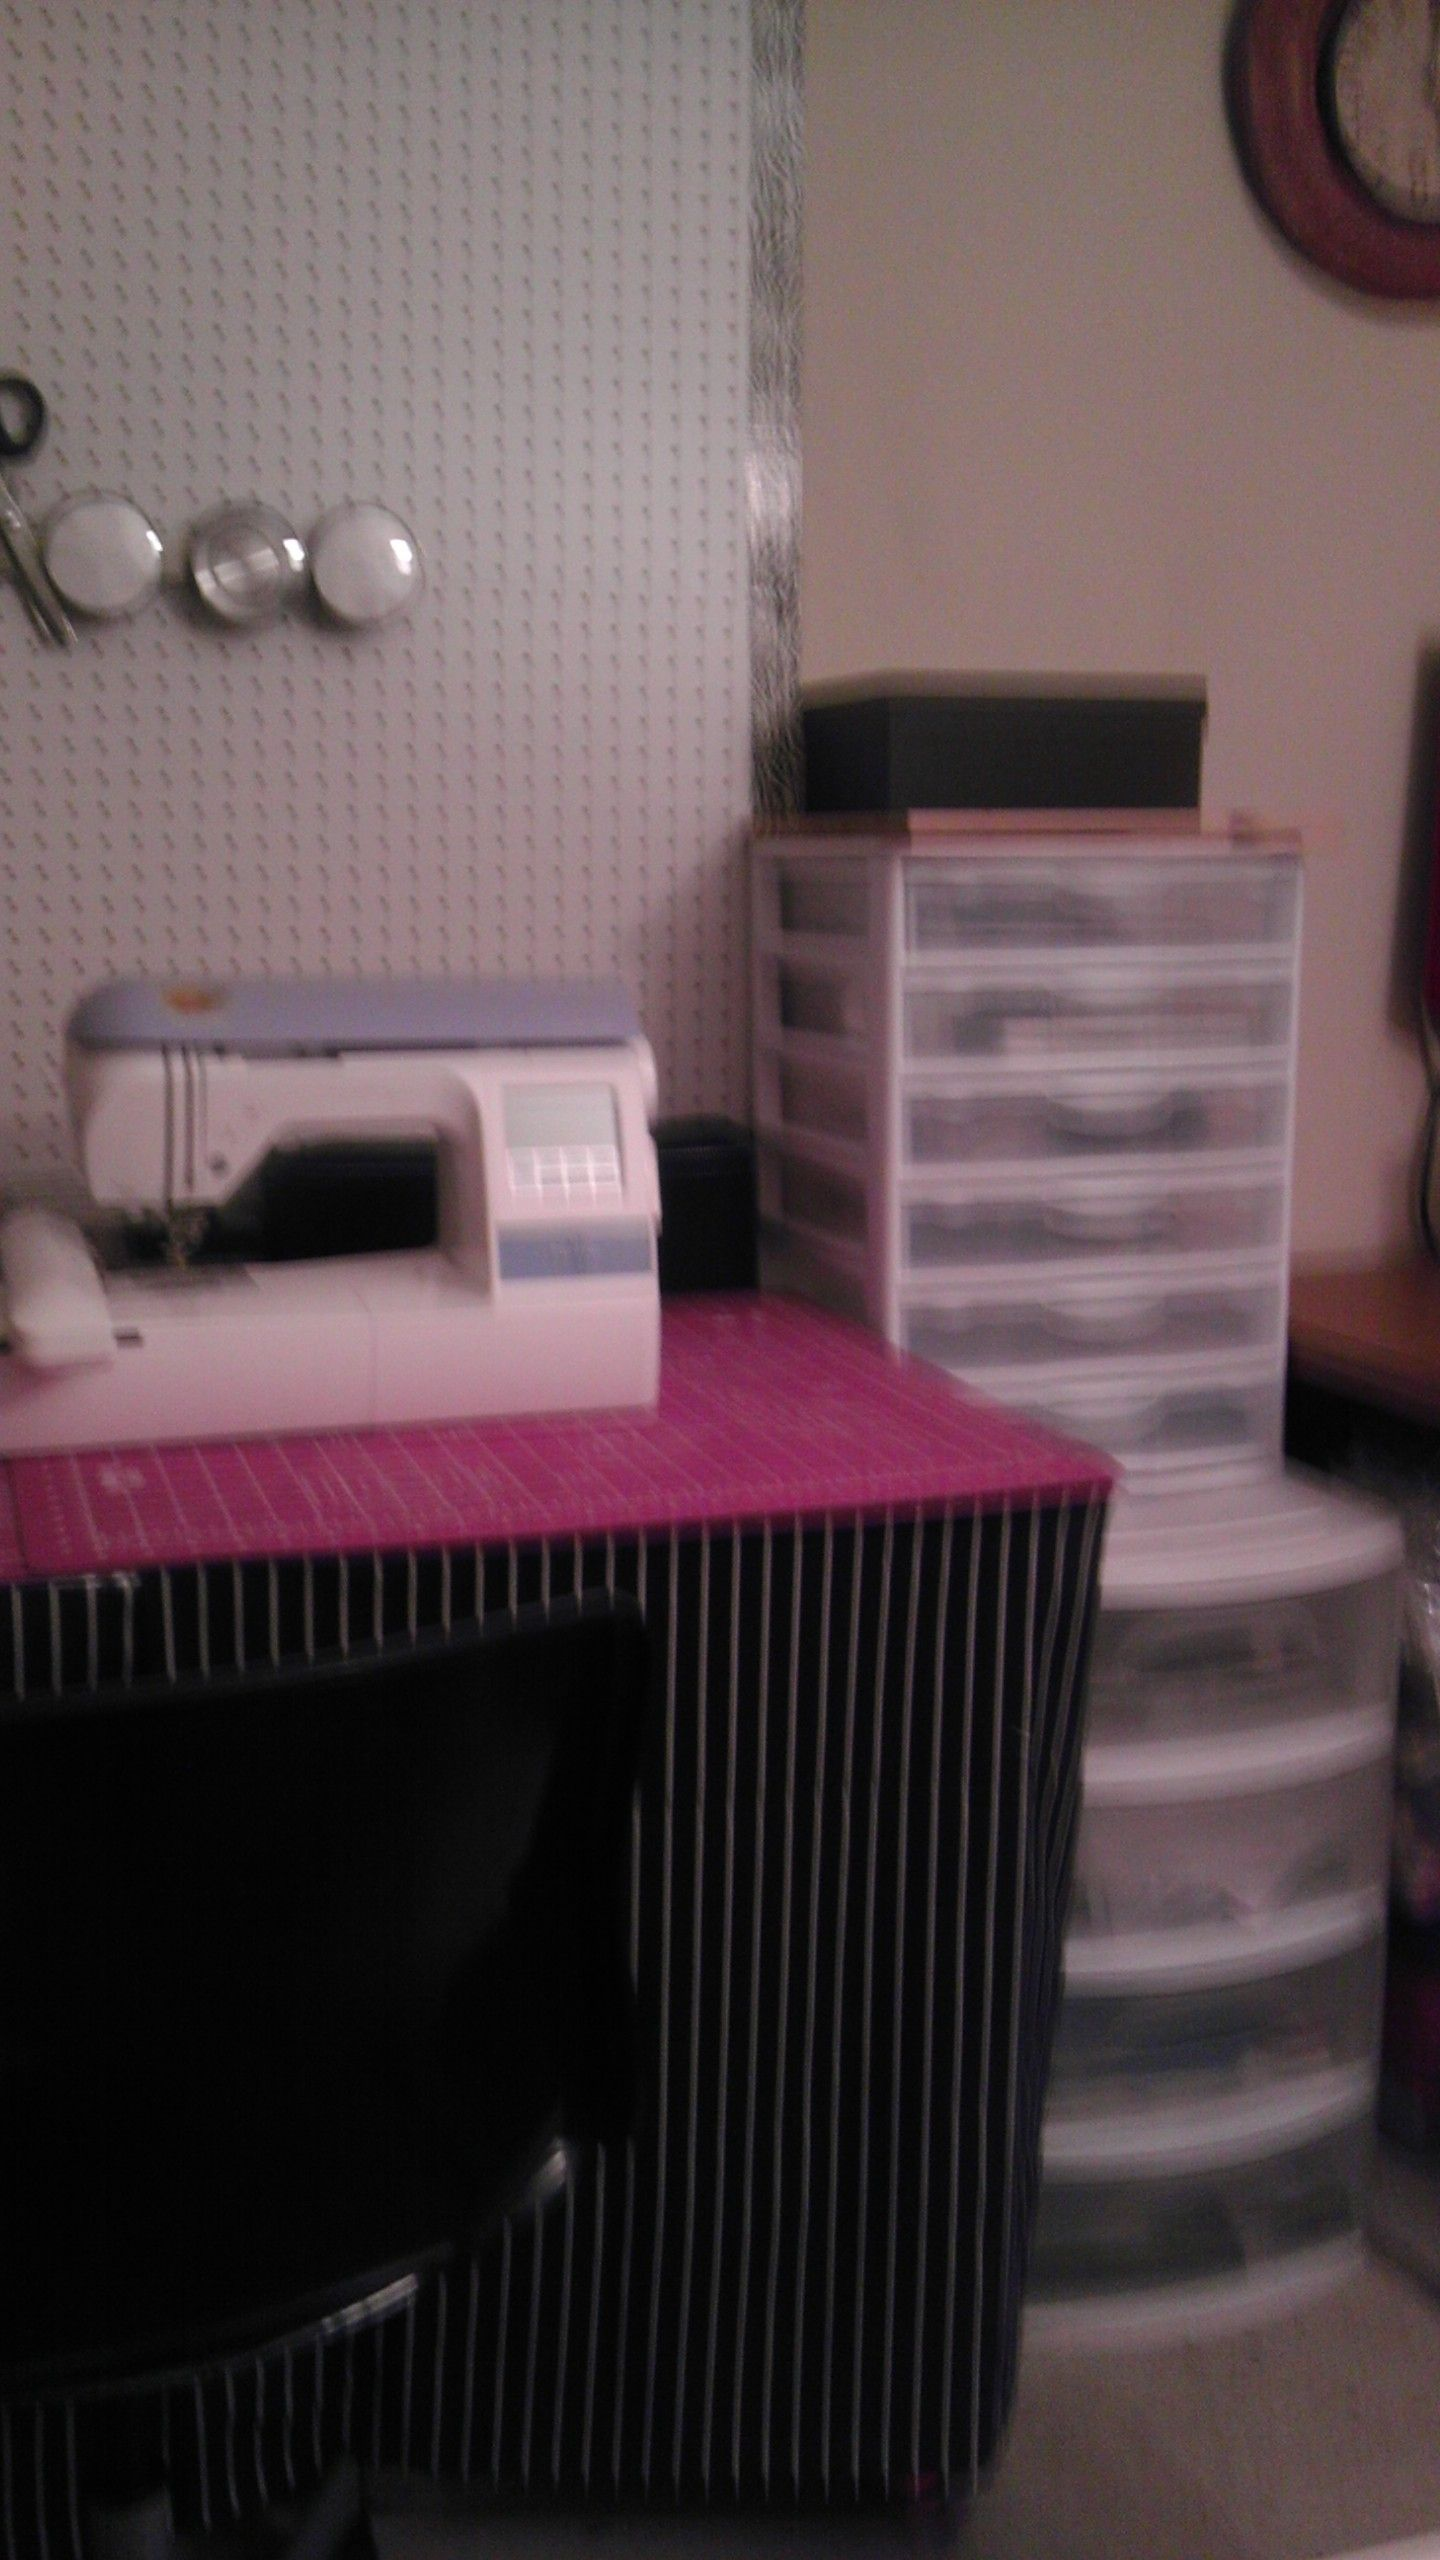 Embroidery Supply Storage